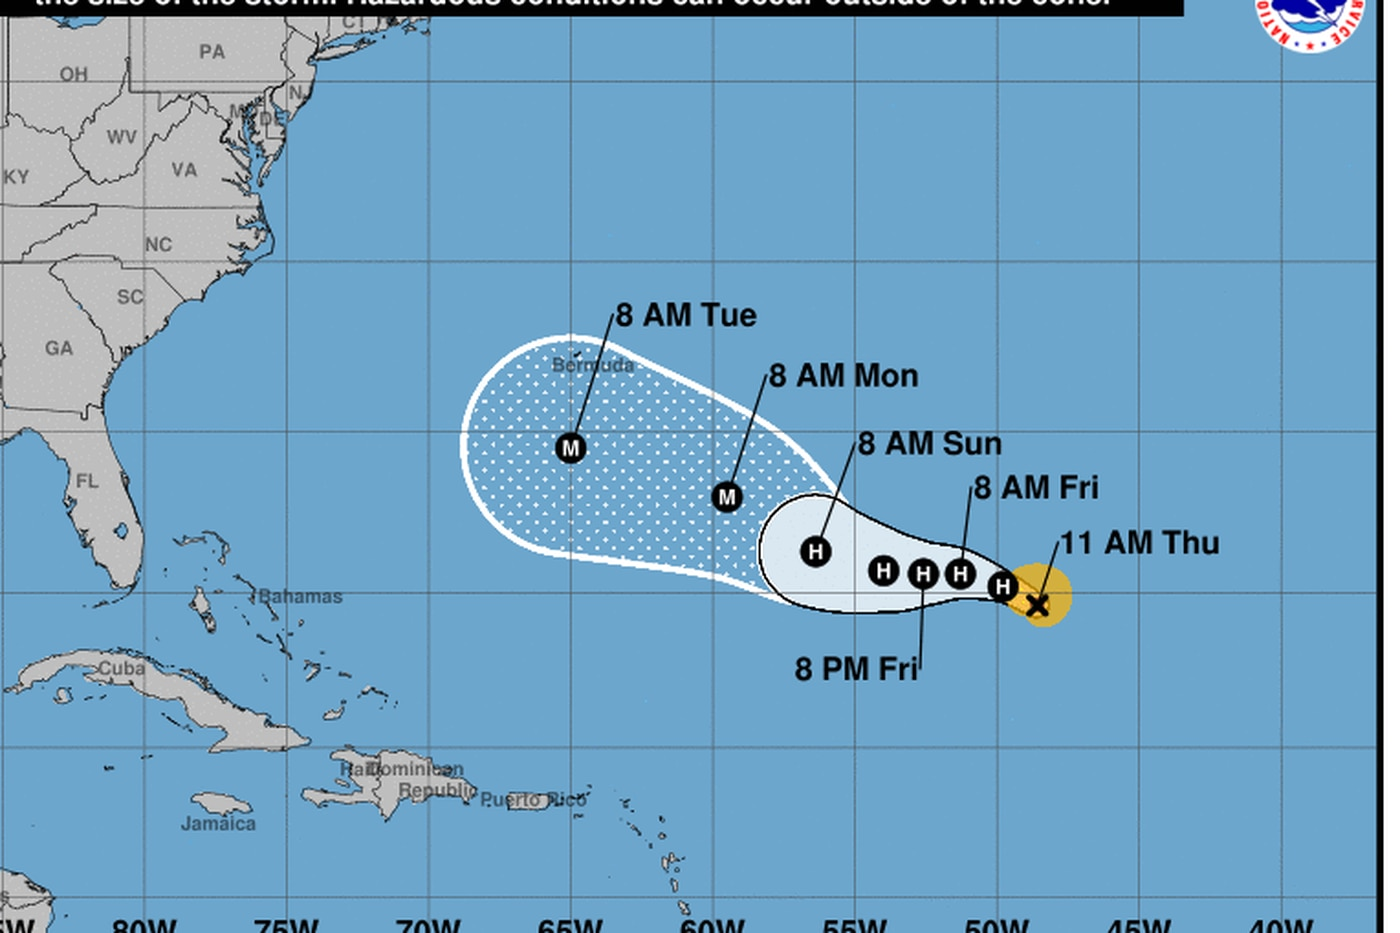 First Major Hurricane Of Season May Take Aim On Area